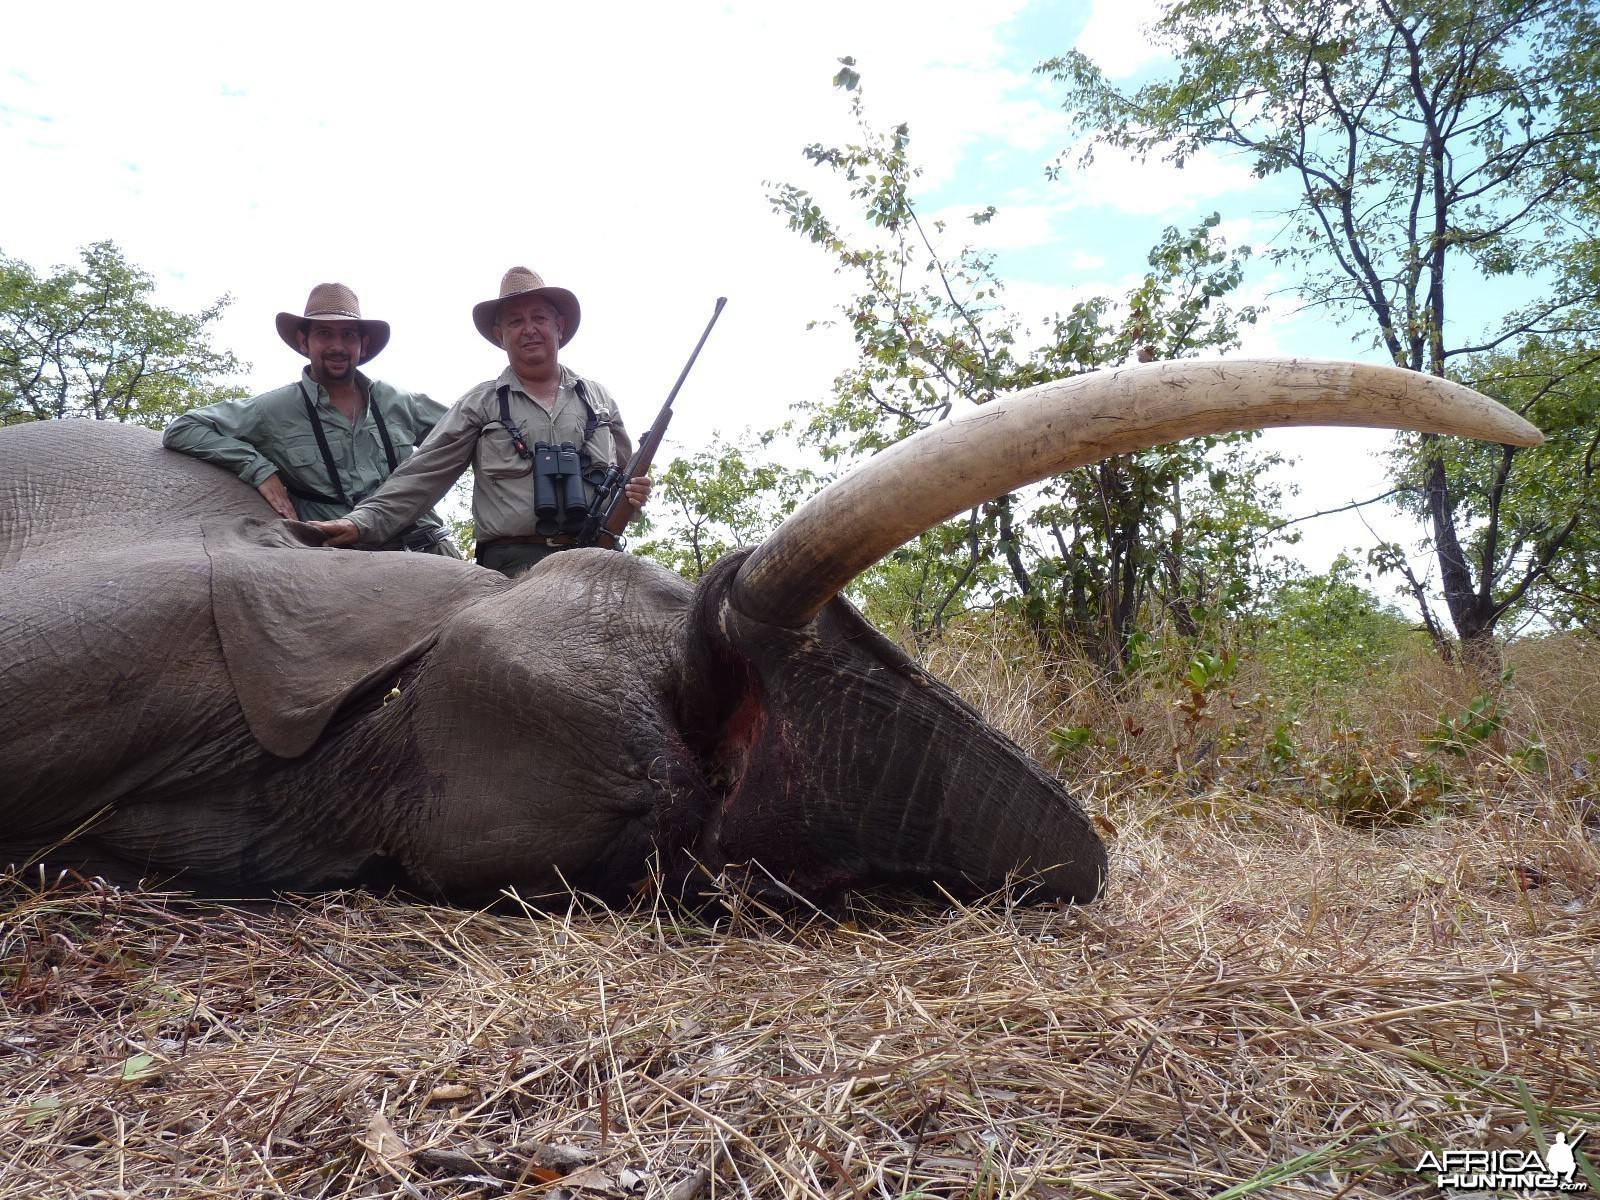 Hunting Elephant with Wintershoek Johnny Vivier Safaris in SA